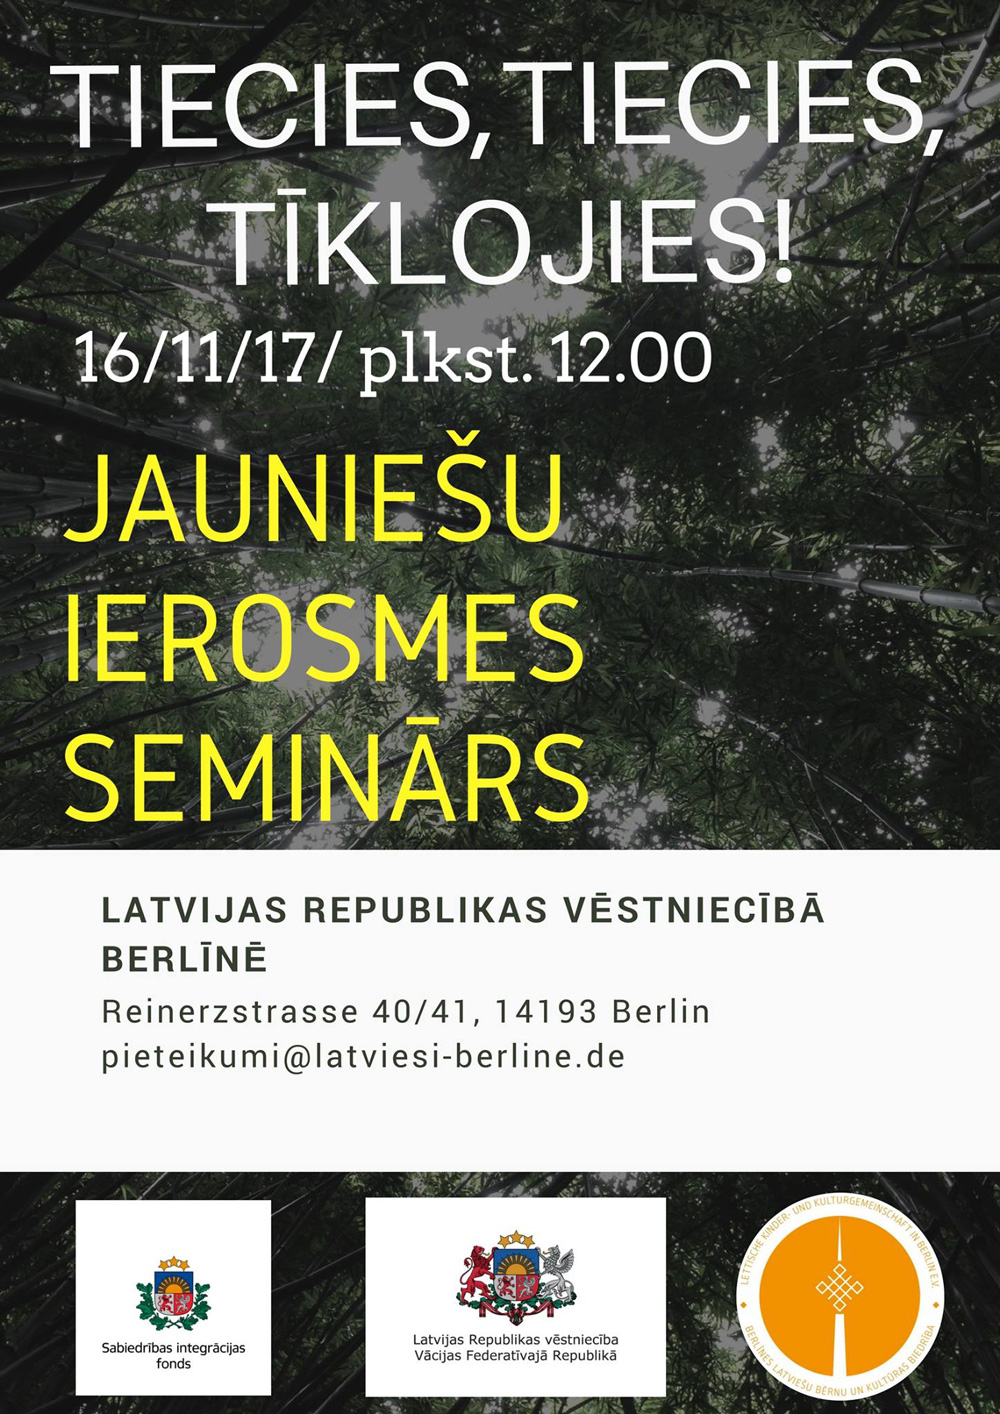 jauniesu-seminars-berline-2017-novembris-a4